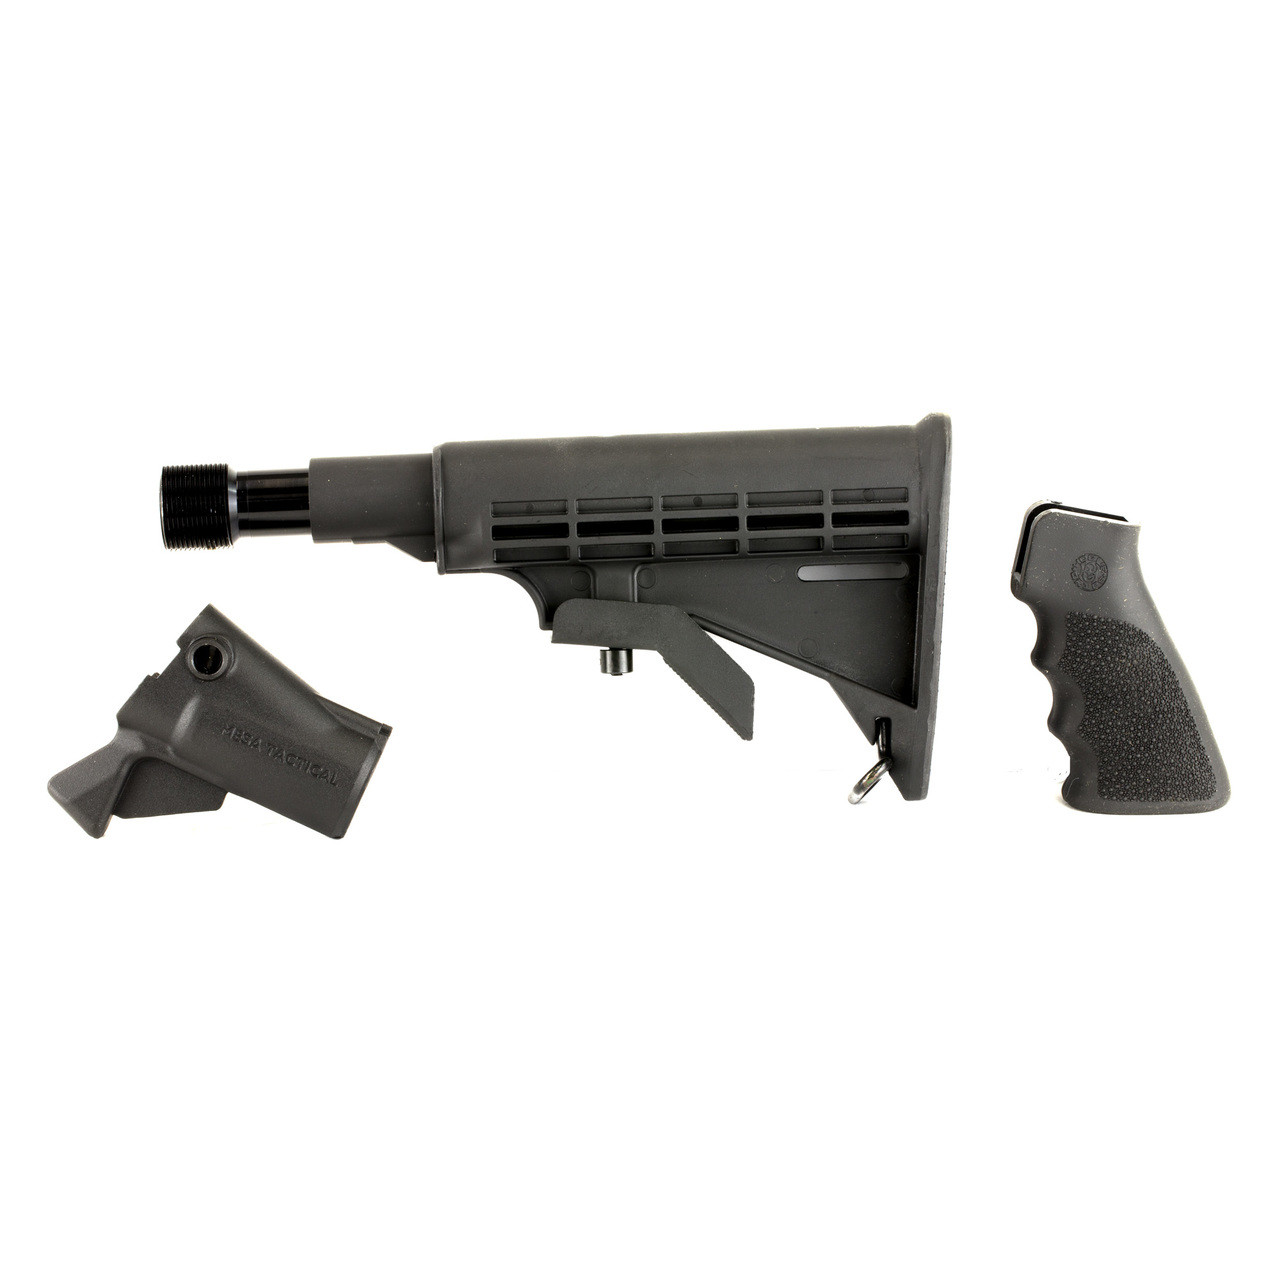 Mesa Tactical LEO Recoil Stock Kit , Fits Remington 870 12 Gauge, Includes  LEO Stock Adapter, Enidine Recoil Buffer, Standard A2 Collapsible Stock,